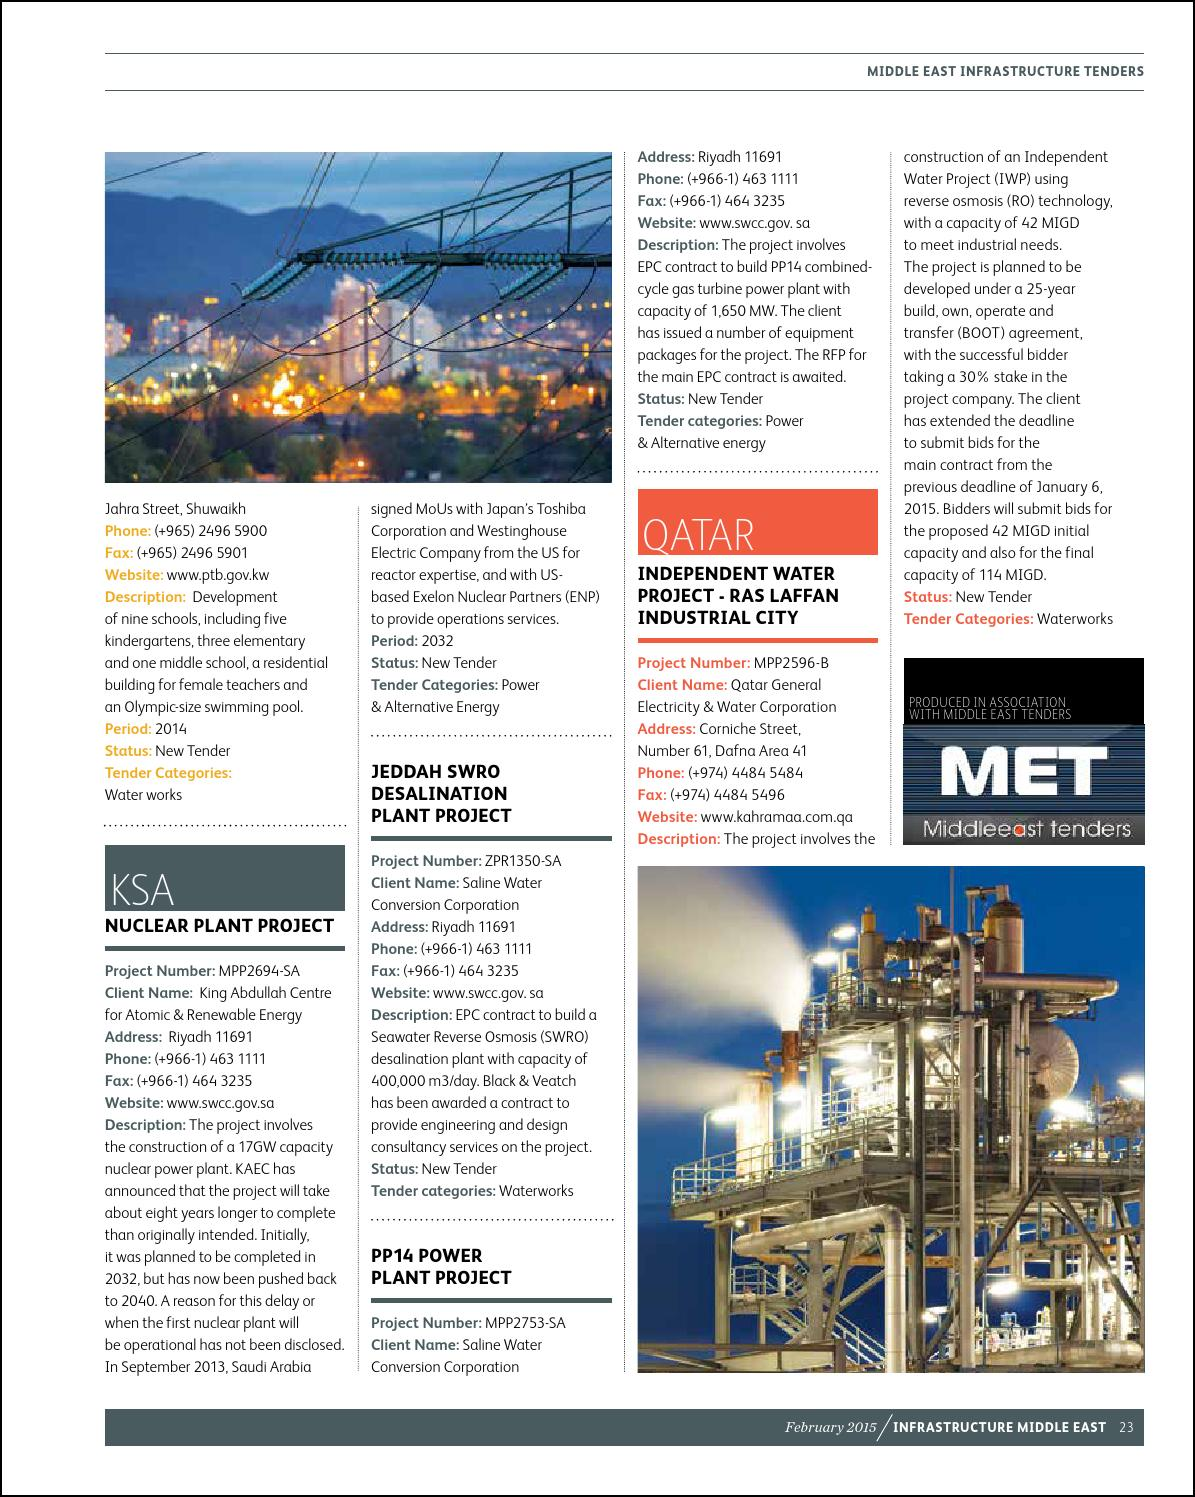 Infrastructure Middle East February 2015 by Infrastructure